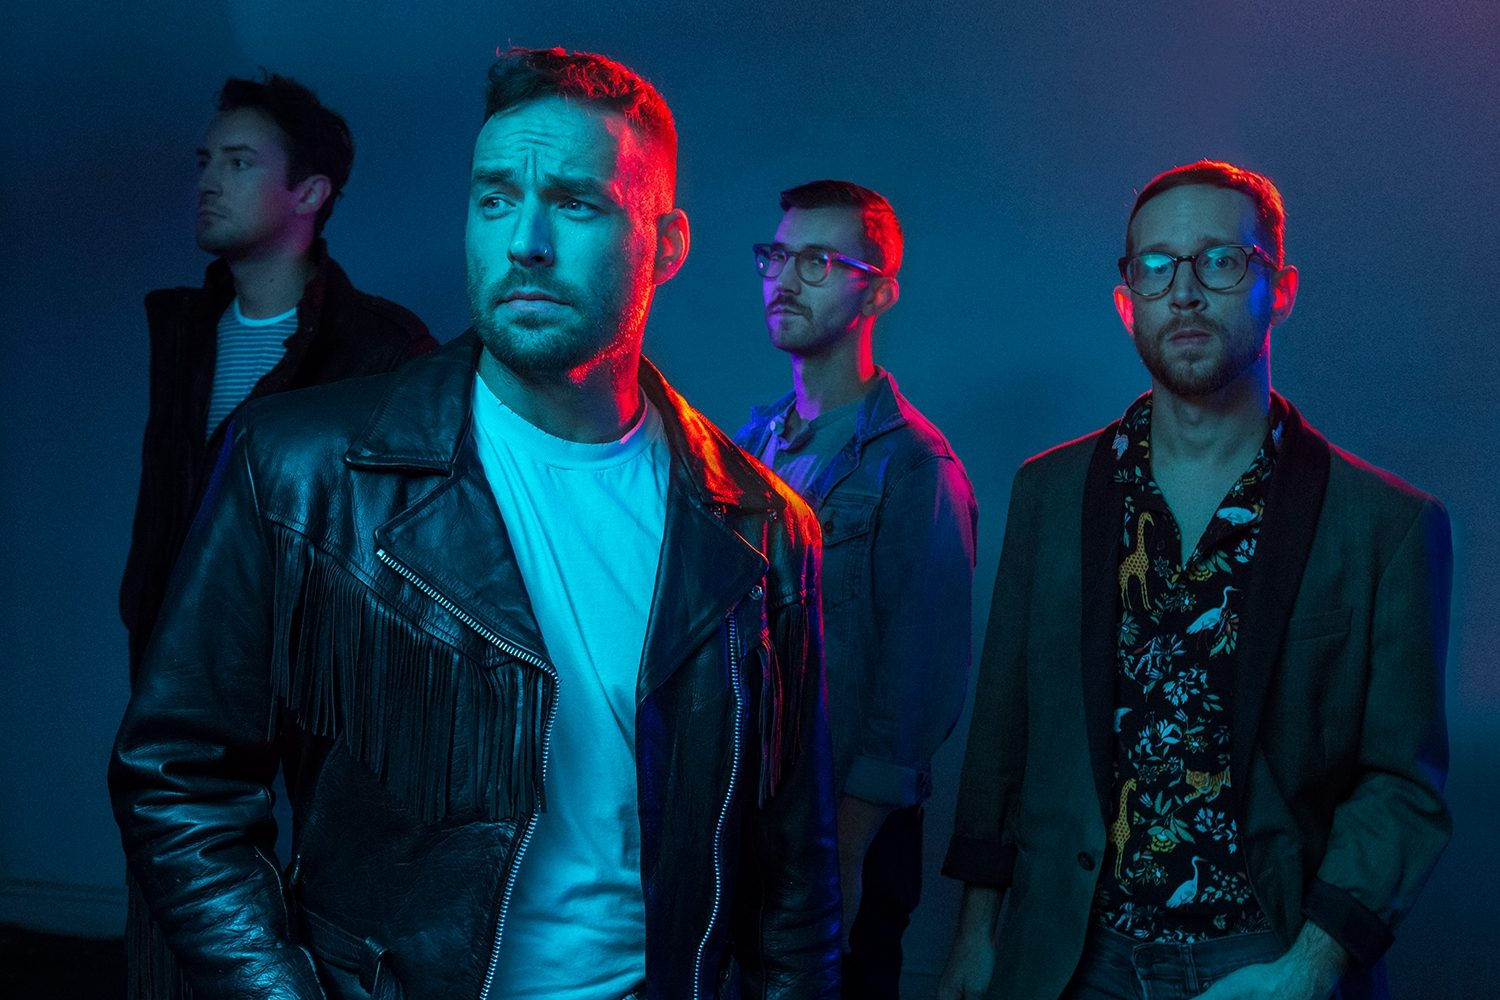 It's Emarosa, but not as you know them: Bradley Walden discusses the band's glam new sound